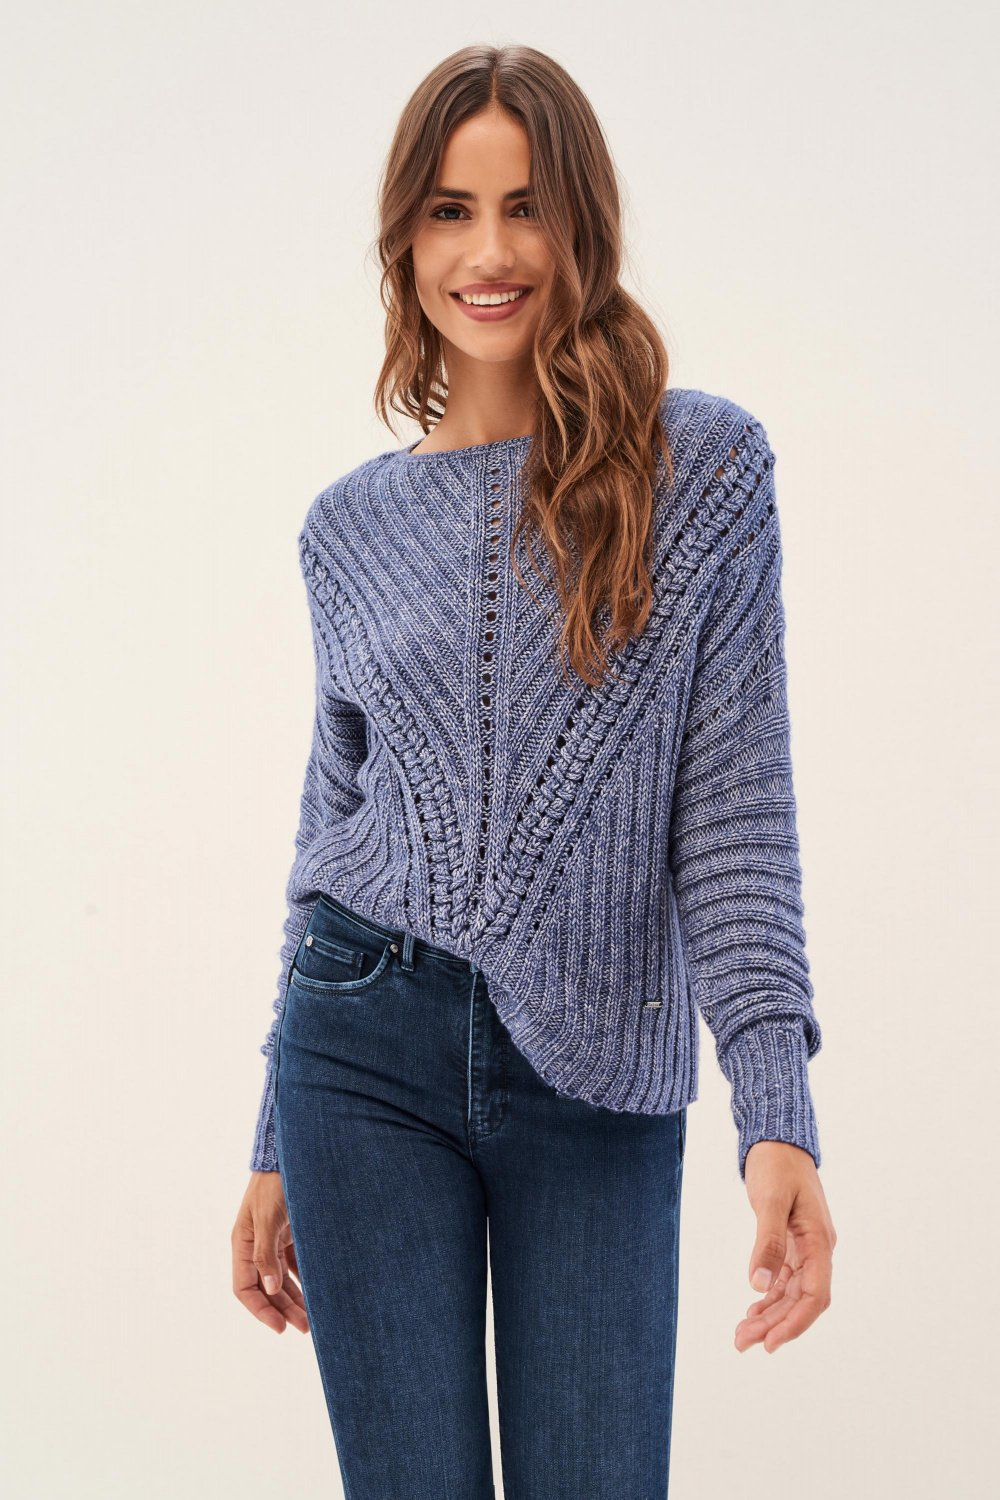 Knitted jersey with braid - Salsa